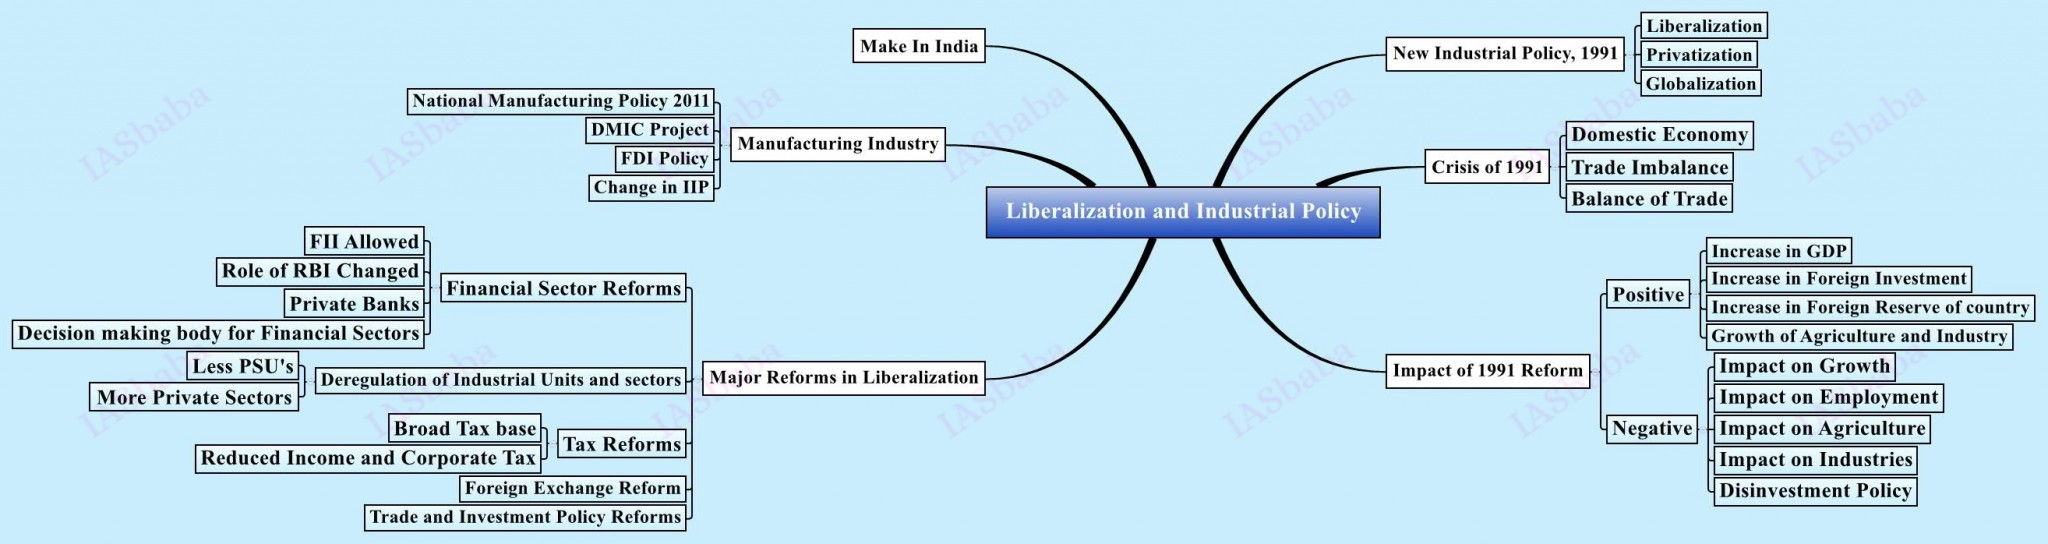 Liberalization and Industrial Policy